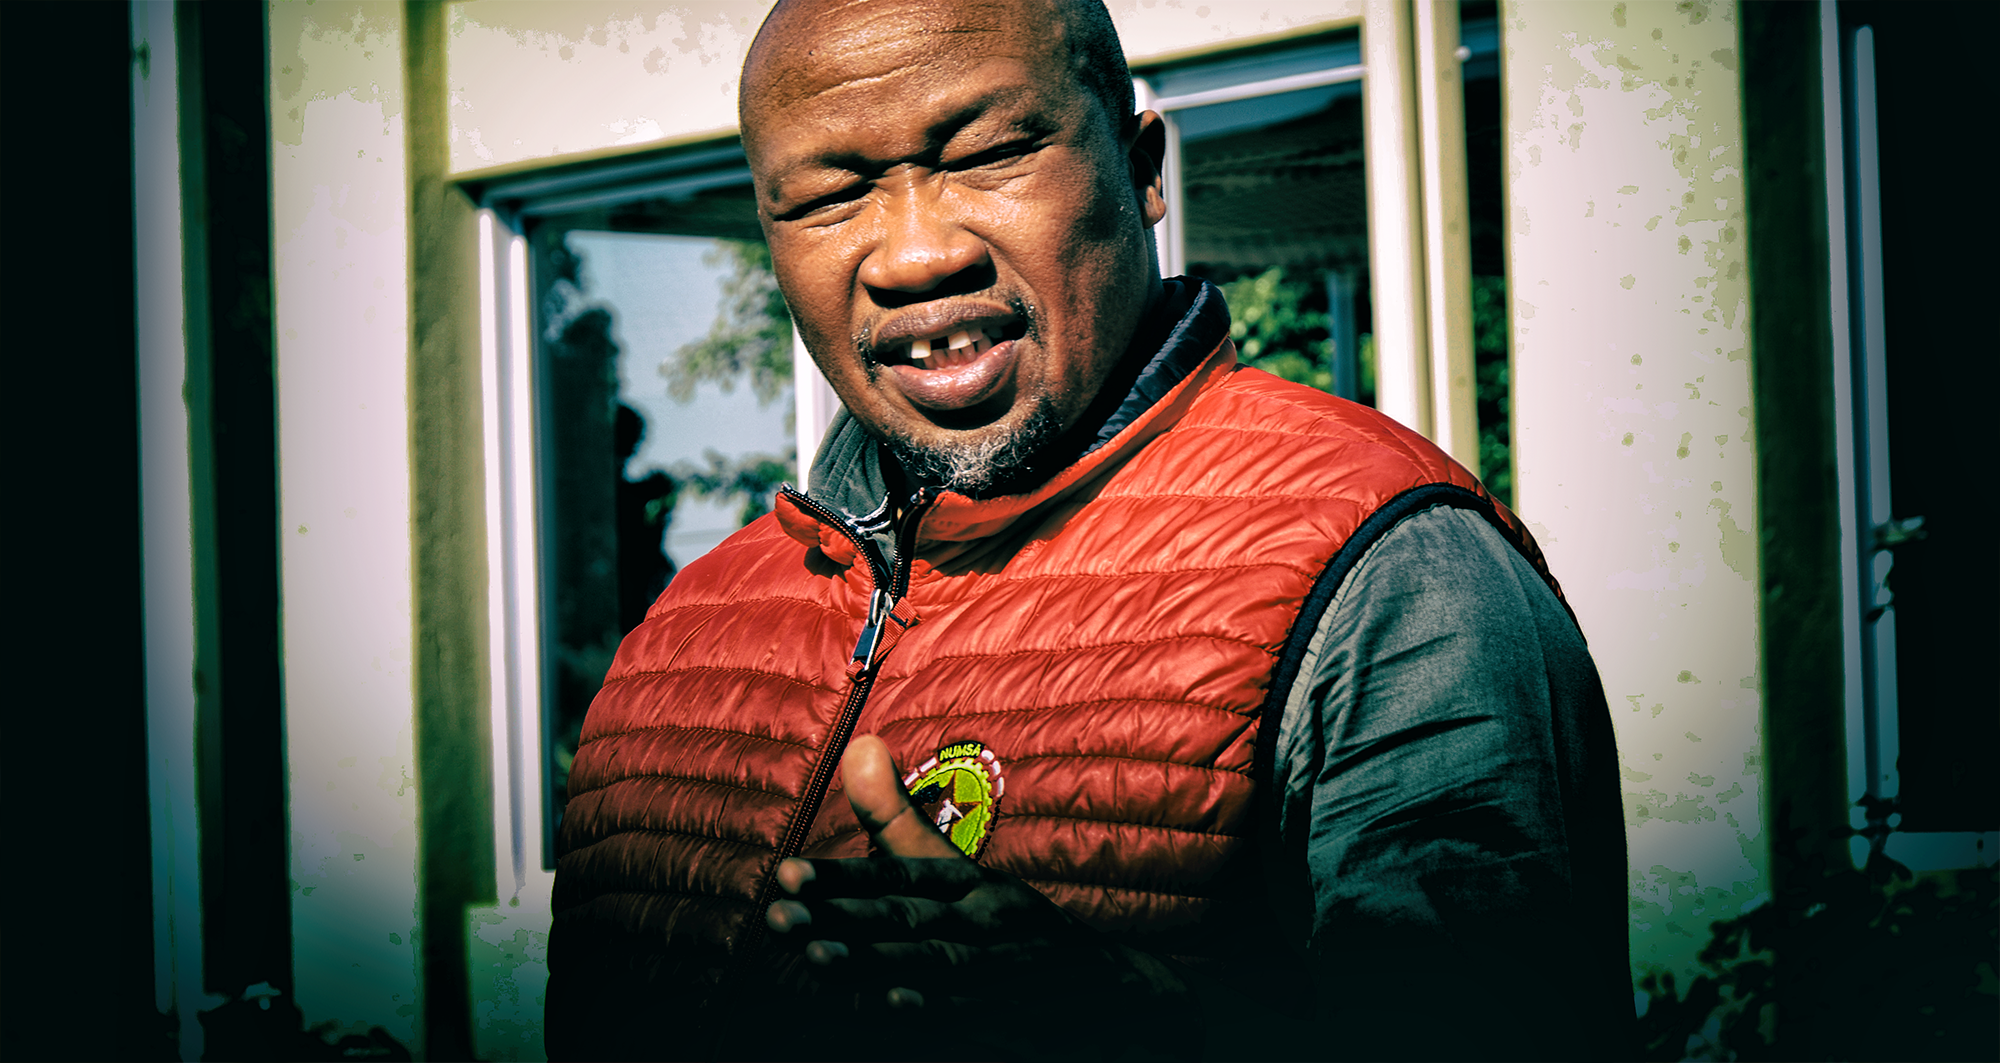 End of the road for the Socialist Revolutionary Workers' Party? And what future for Numsa?